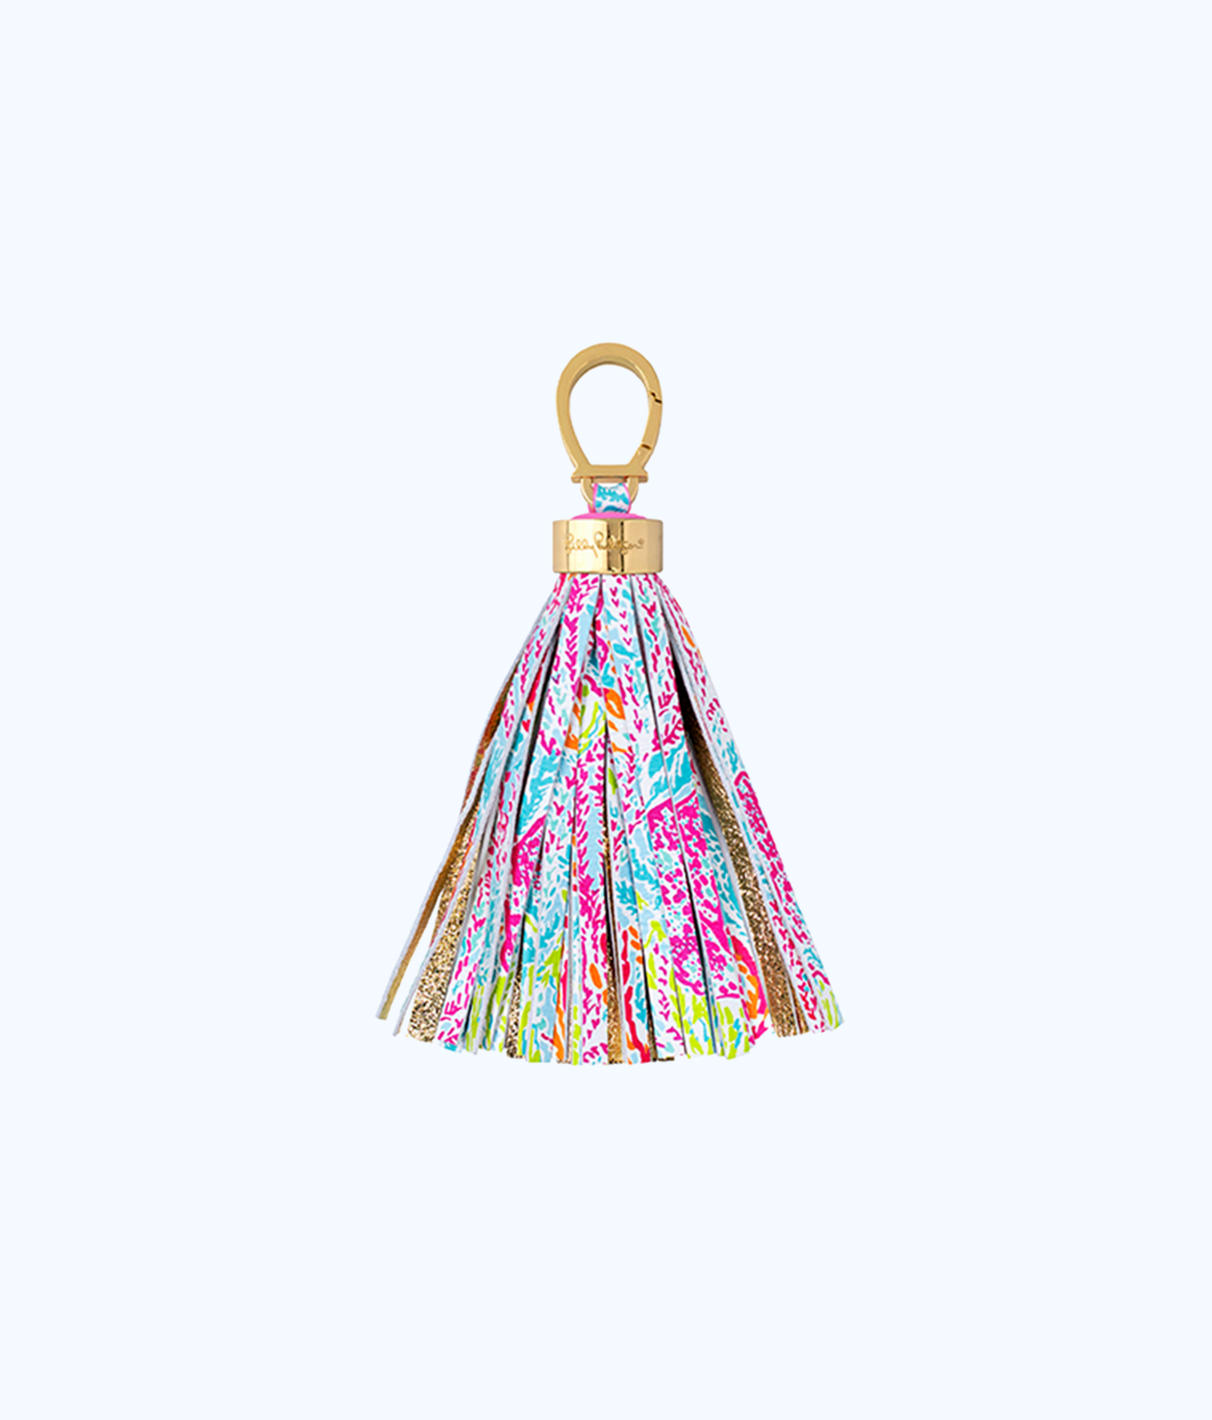 Lilly Pulitzer Lilly Pulitzer Keychain